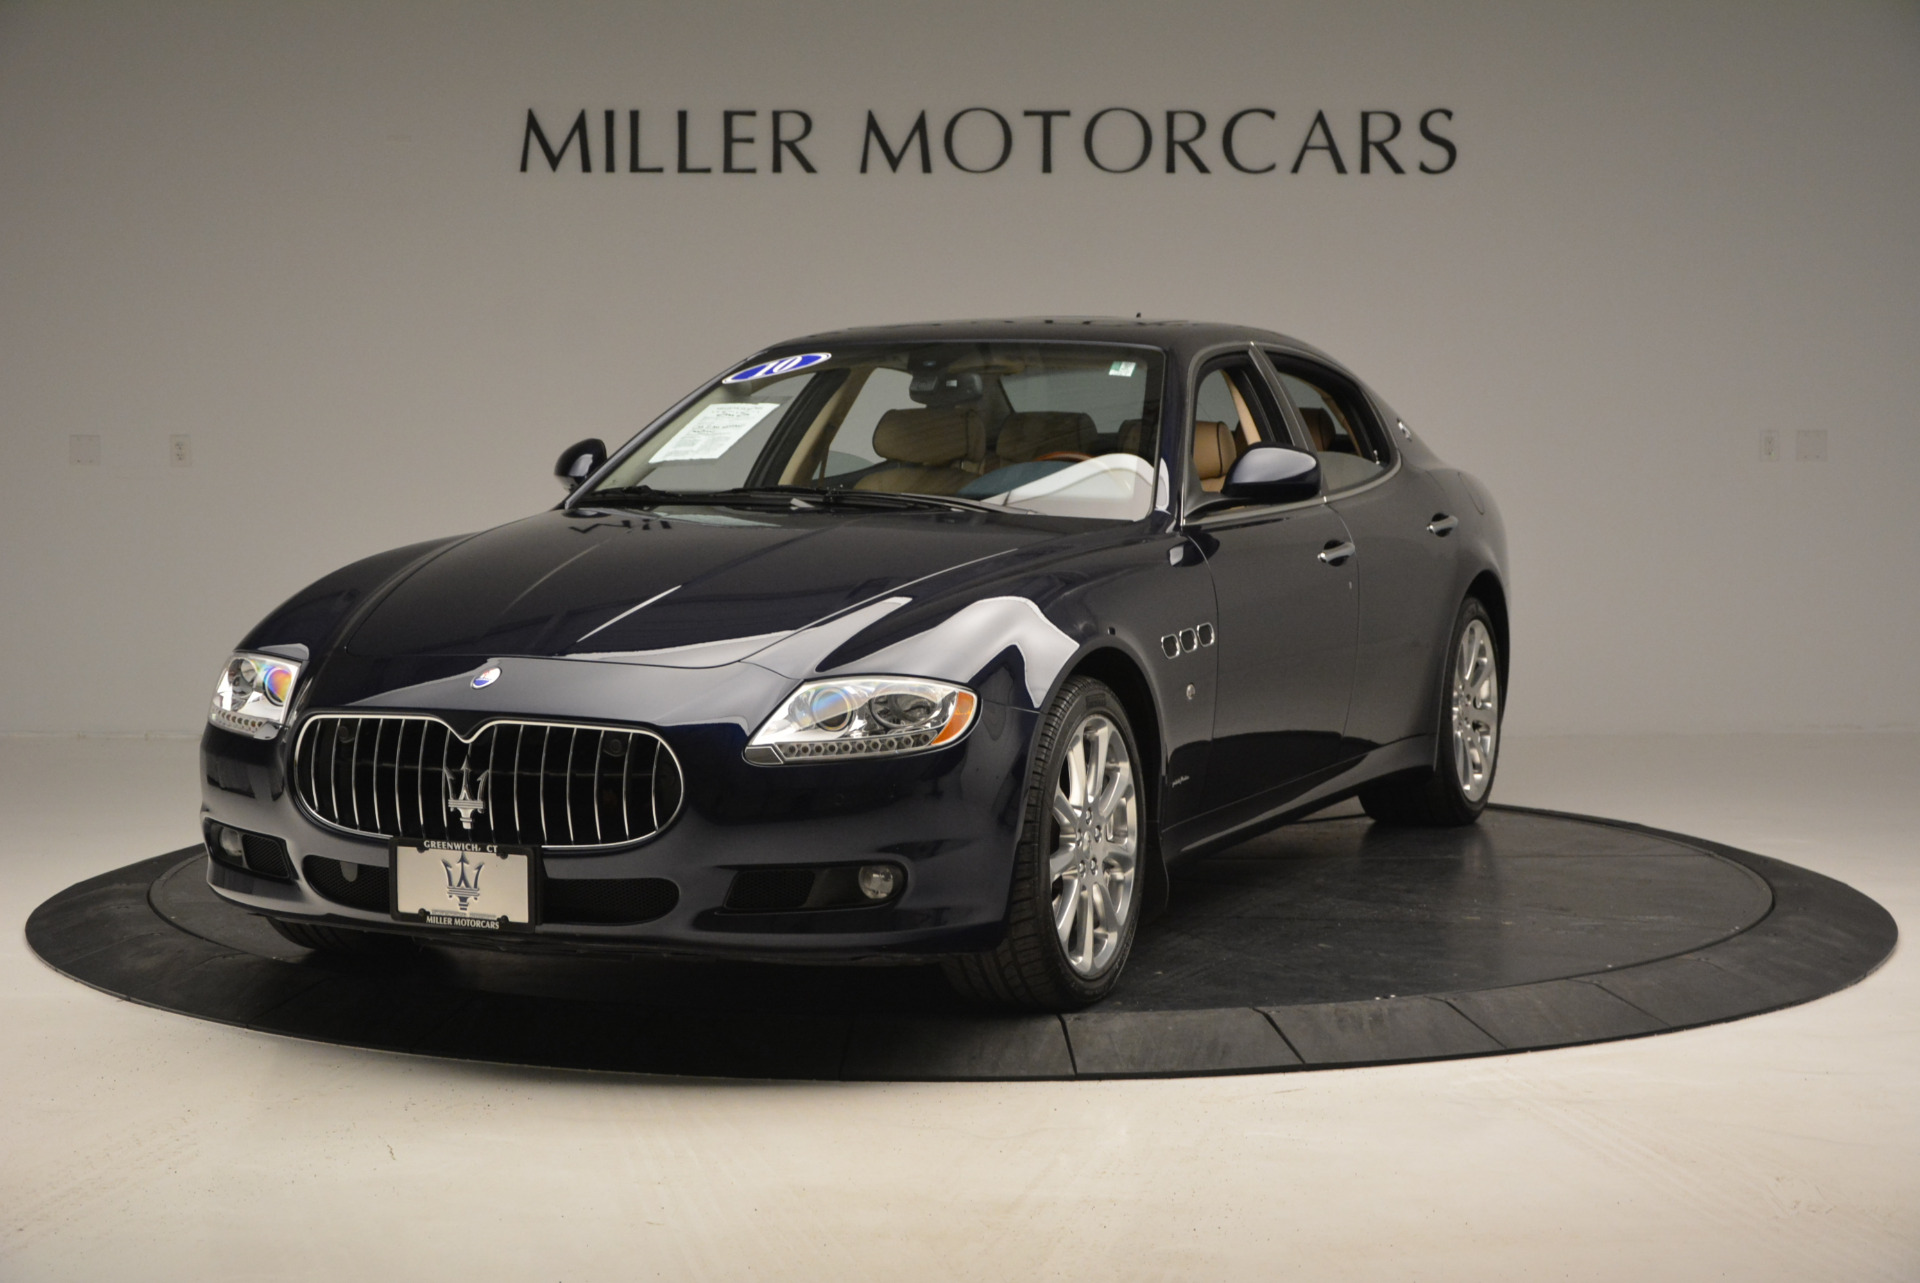 Used 2010 Maserati Quattroporte S for sale Sold at Rolls-Royce Motor Cars Greenwich in Greenwich CT 06830 1